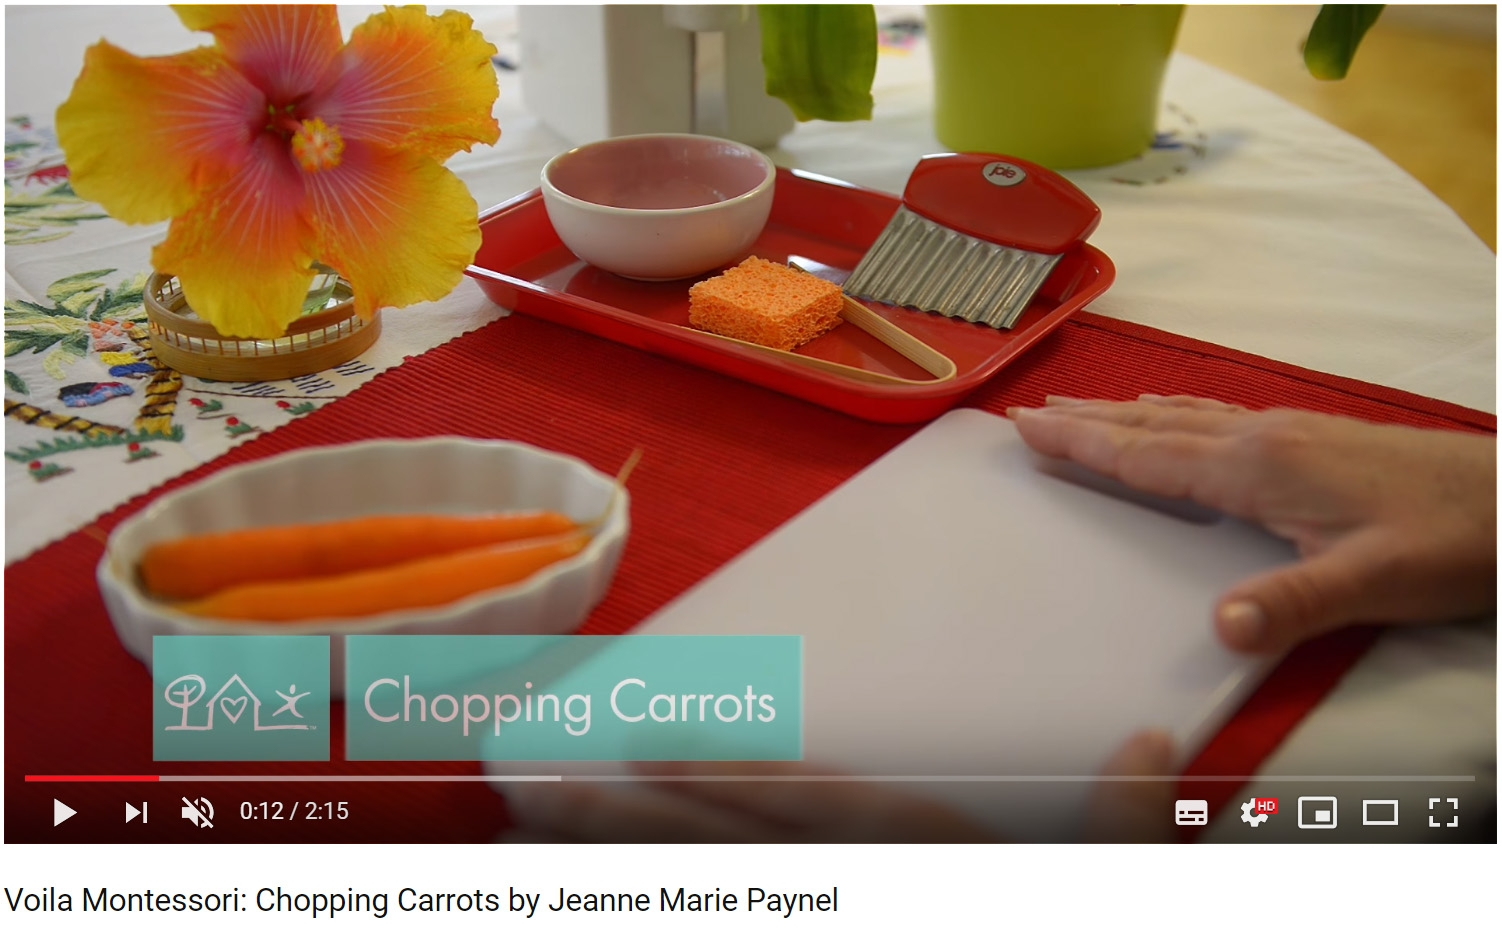 montessori crinkle chopping carrots